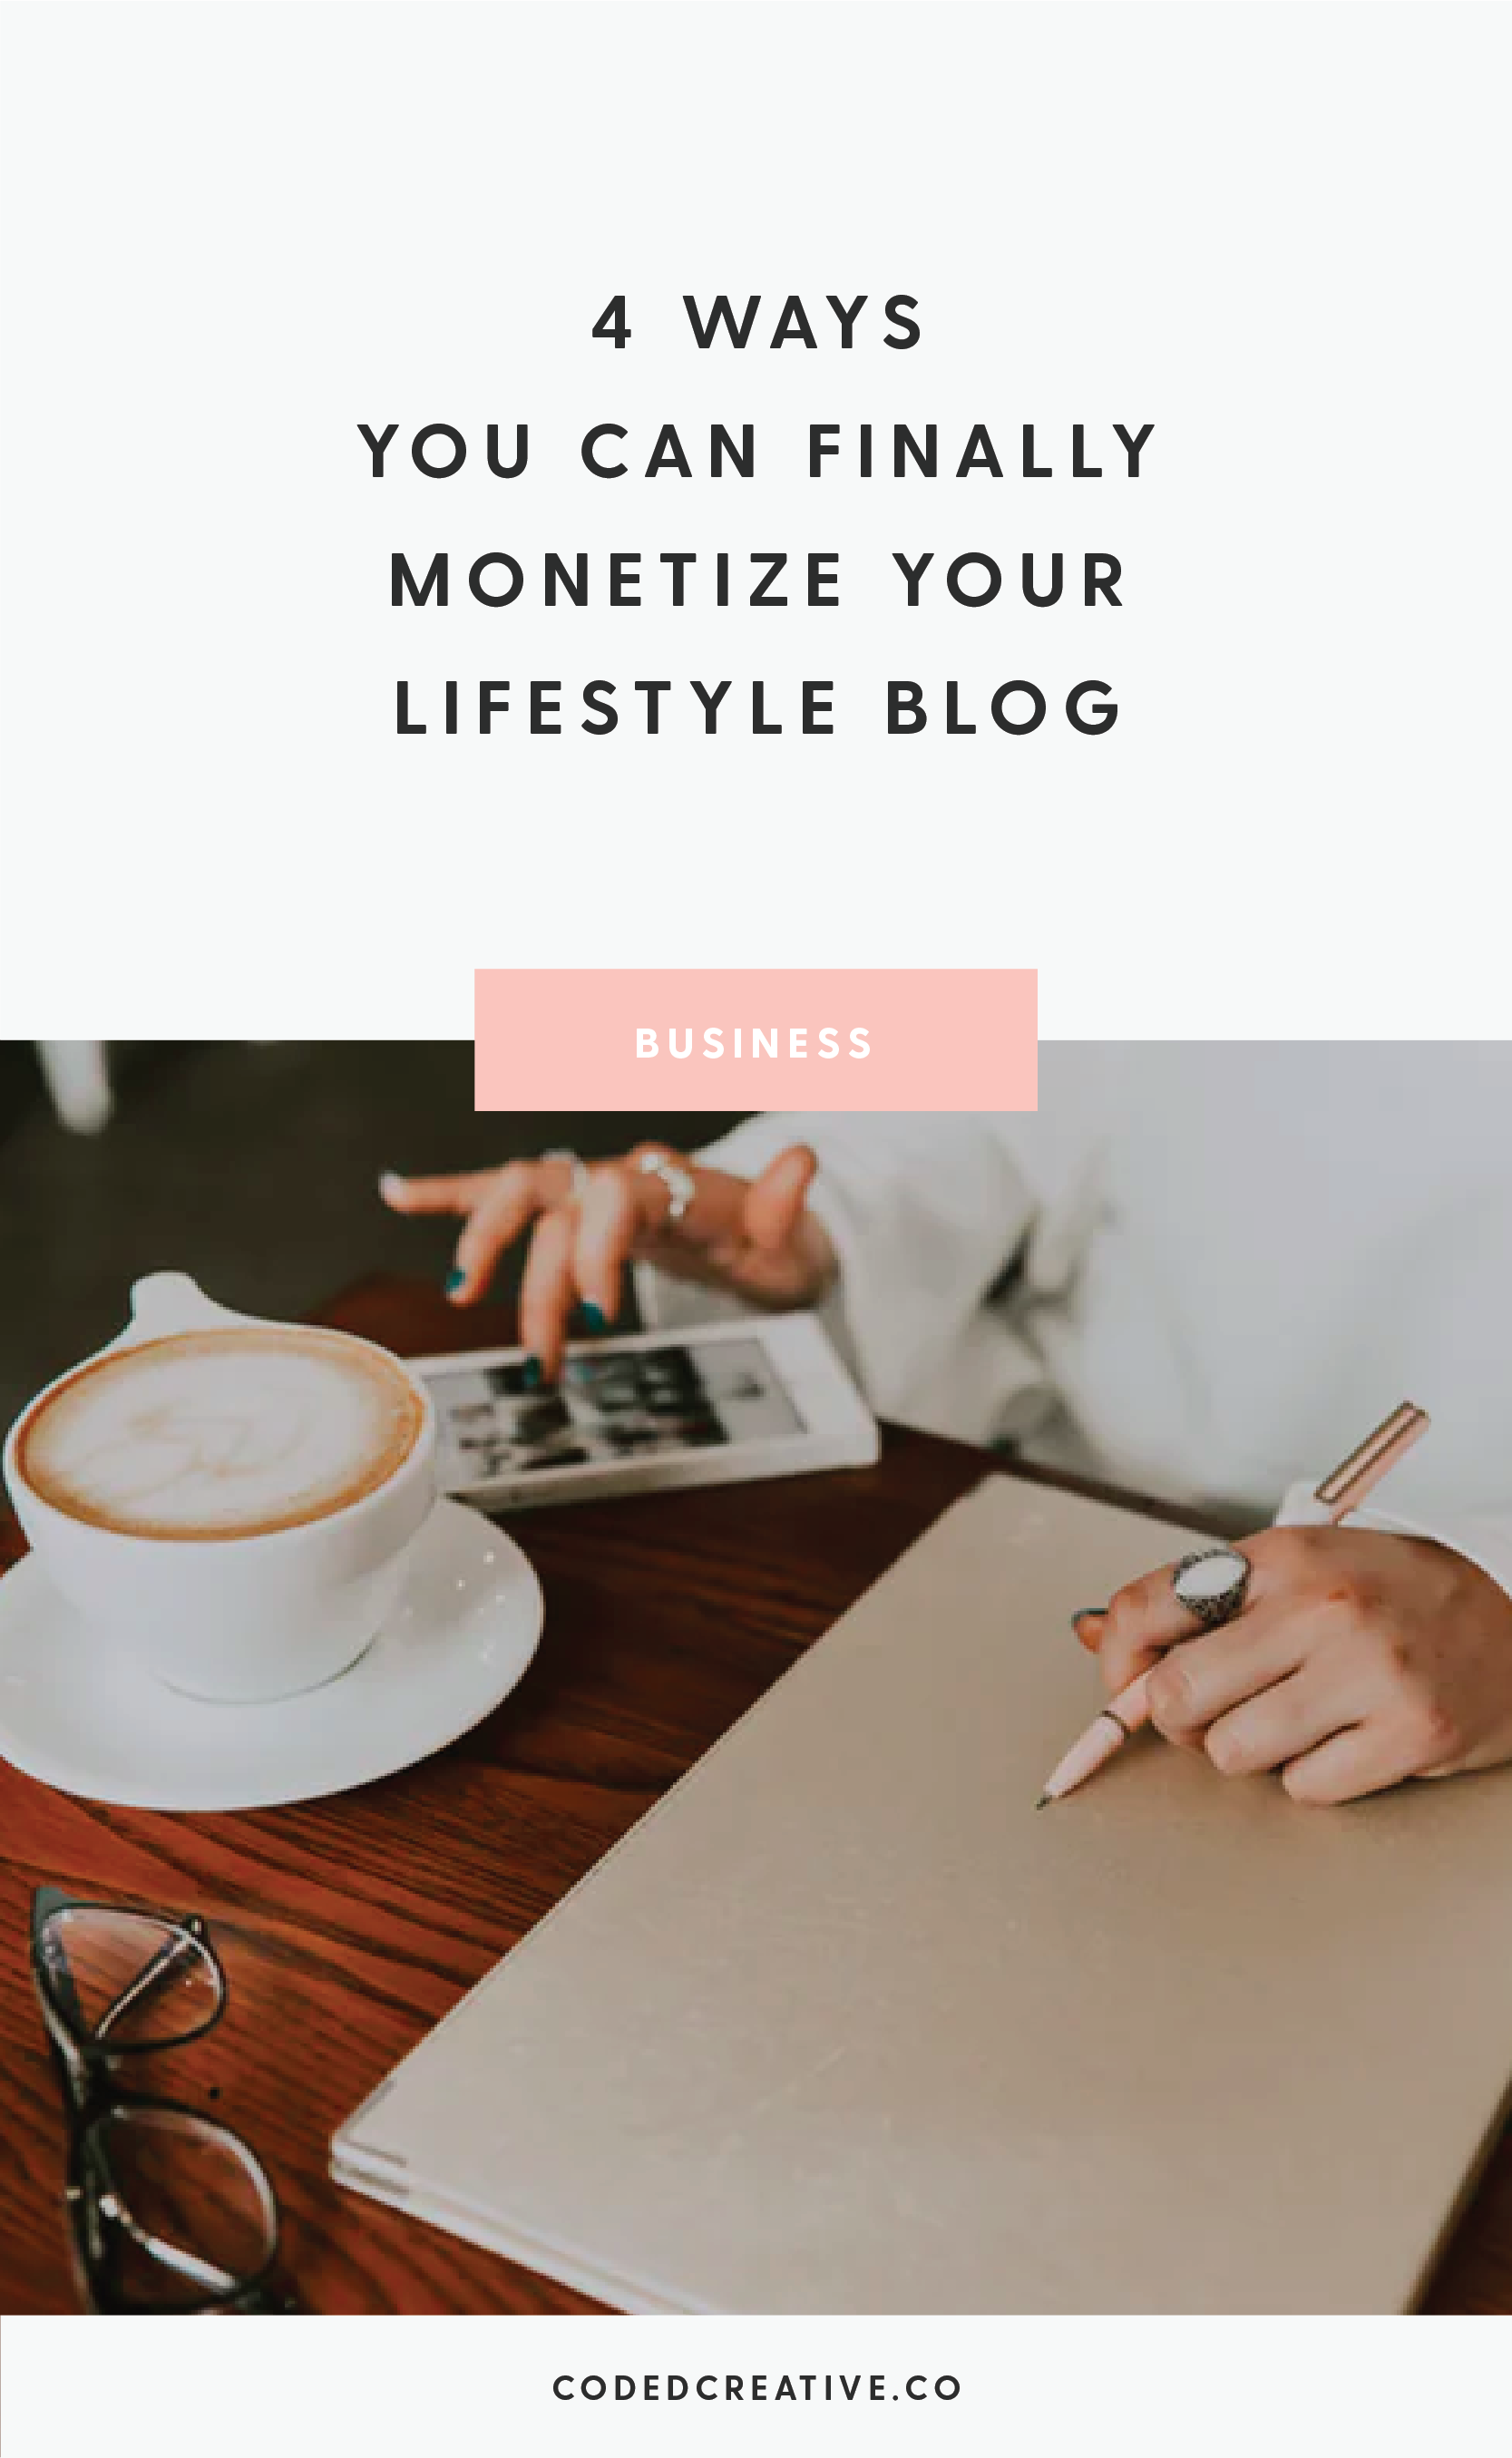 Ready to finally make some money from your lifestyle blog? There are 4 key ways you can monetize your hobby blog, and I'm breaking them down with pros and cons for you today!